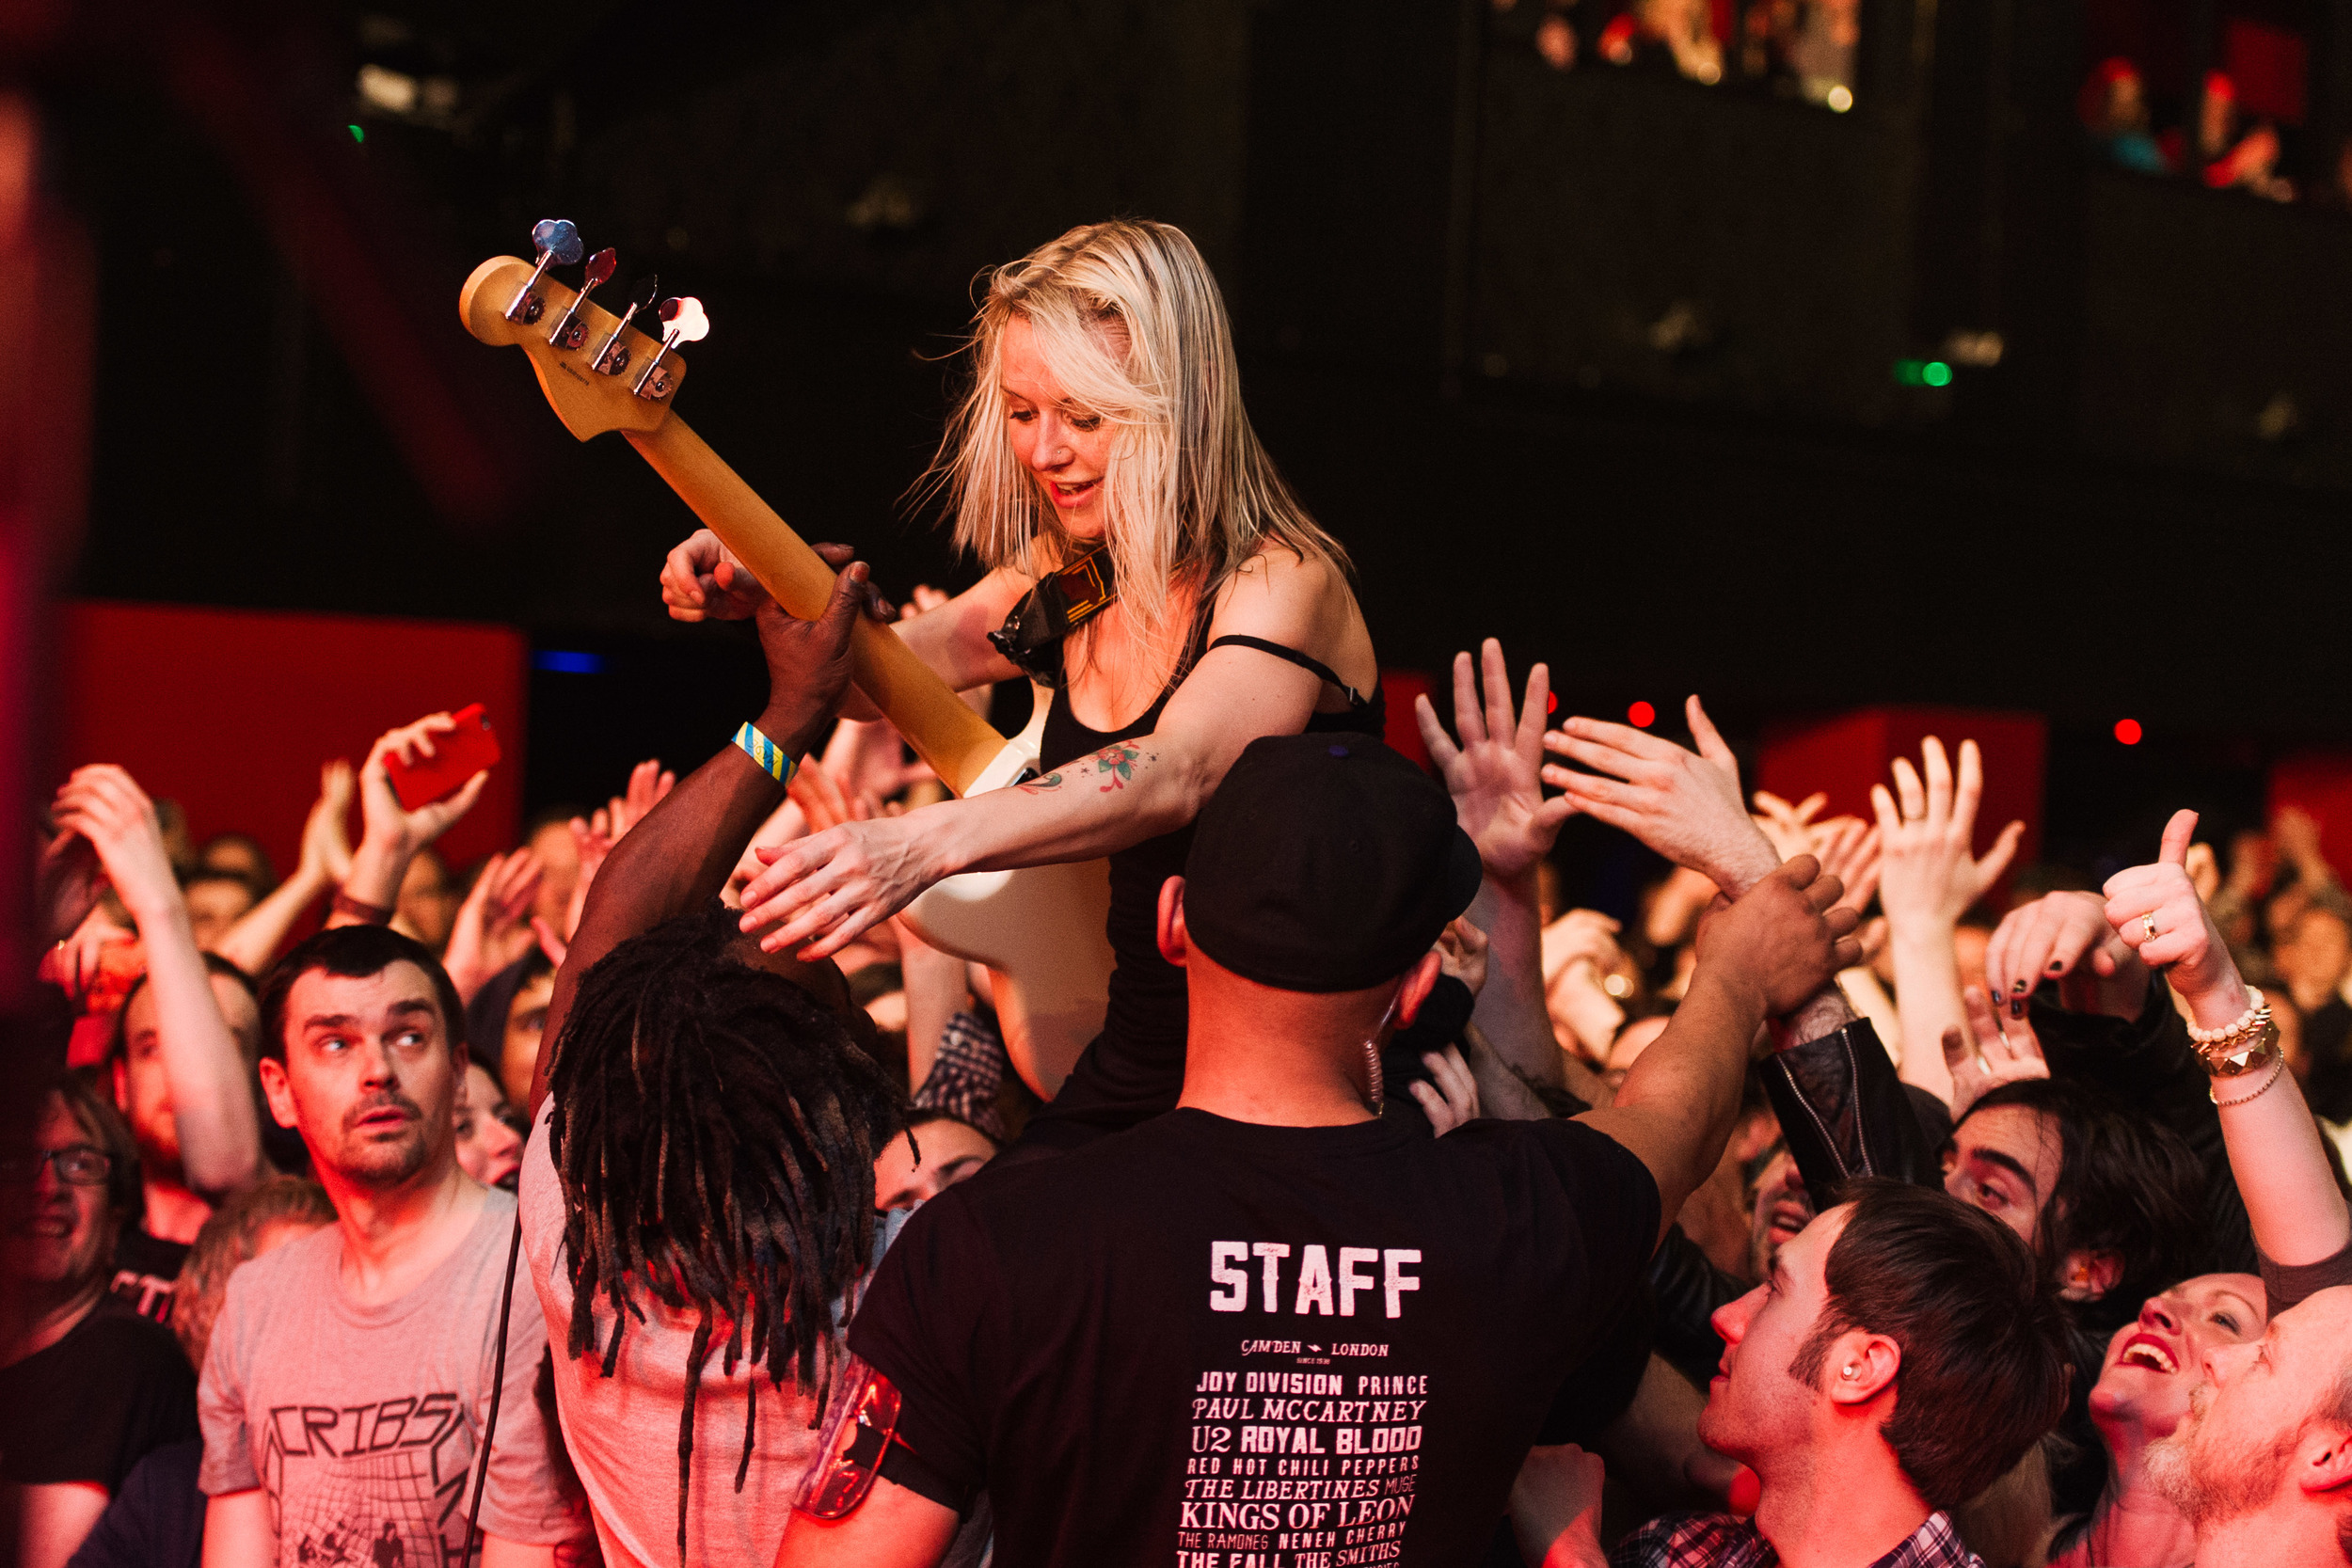 Future Of The Left at The Electric Ballroom - Julia Ruzicka crowdsurfing during Lapsed Catholics